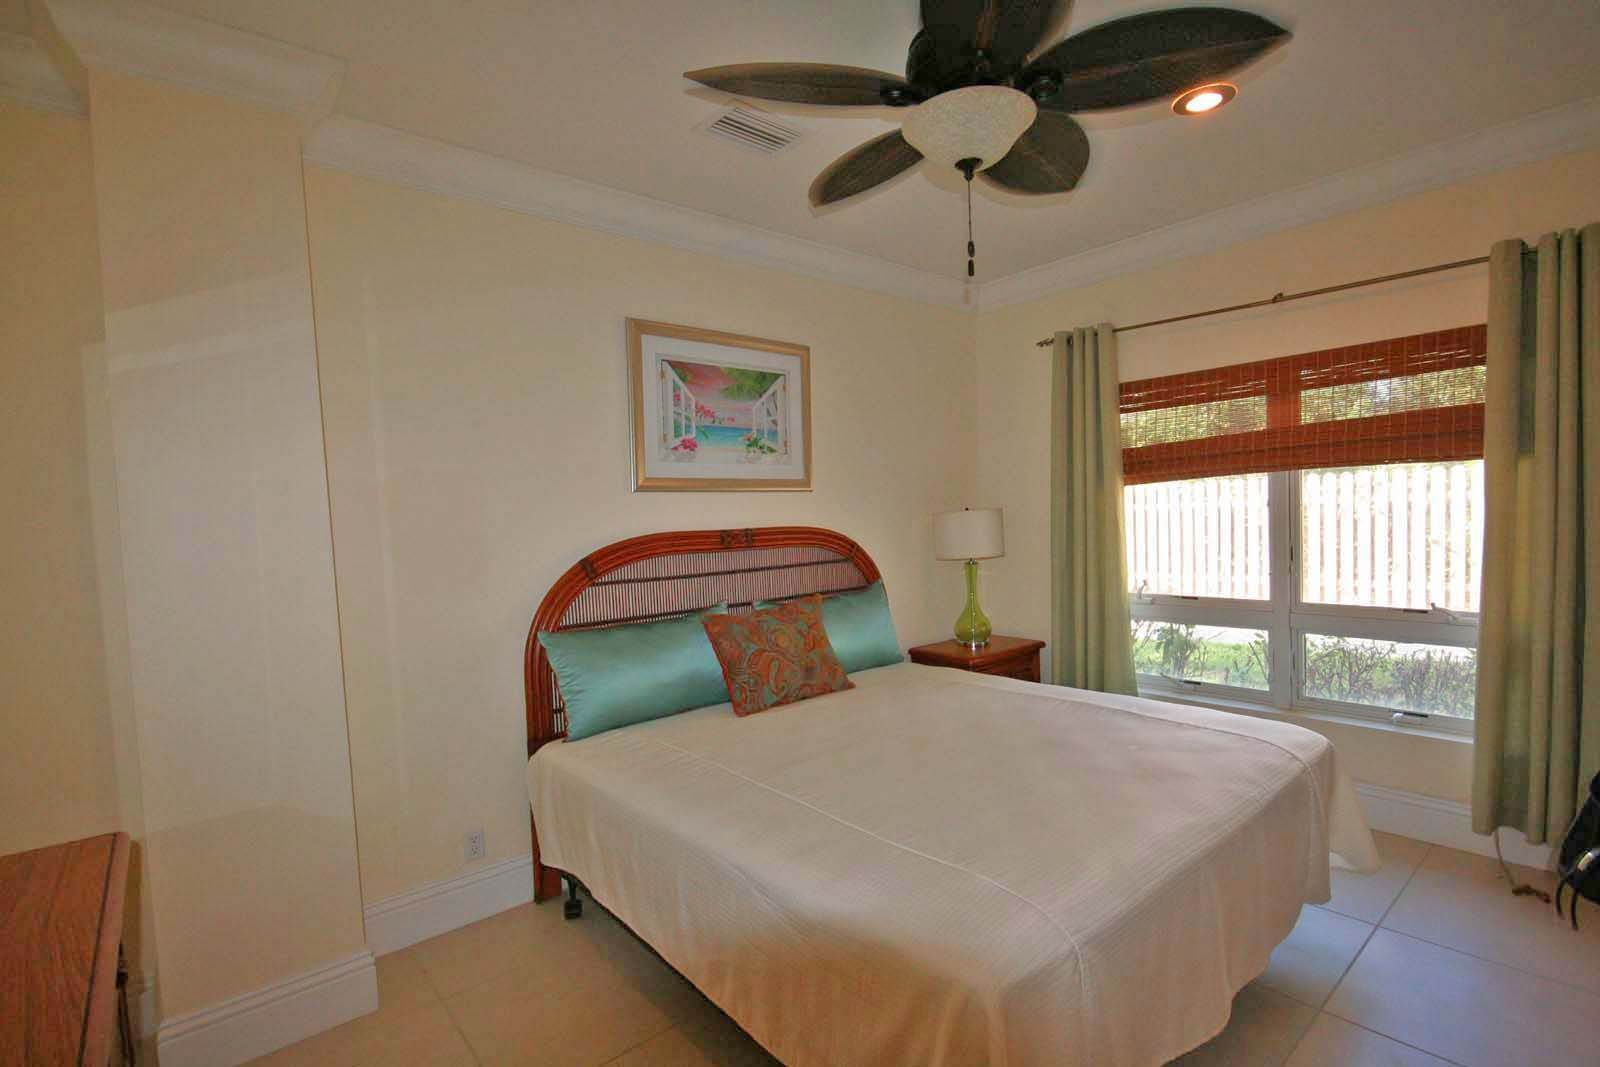 11. Co-op / Condo for Rent at Luxurious Waterfront 1-Bedroom Condominium in Gorgeous Suffolk Court Bahamia Marina, Freeport And Grand Bahama, Bahamas